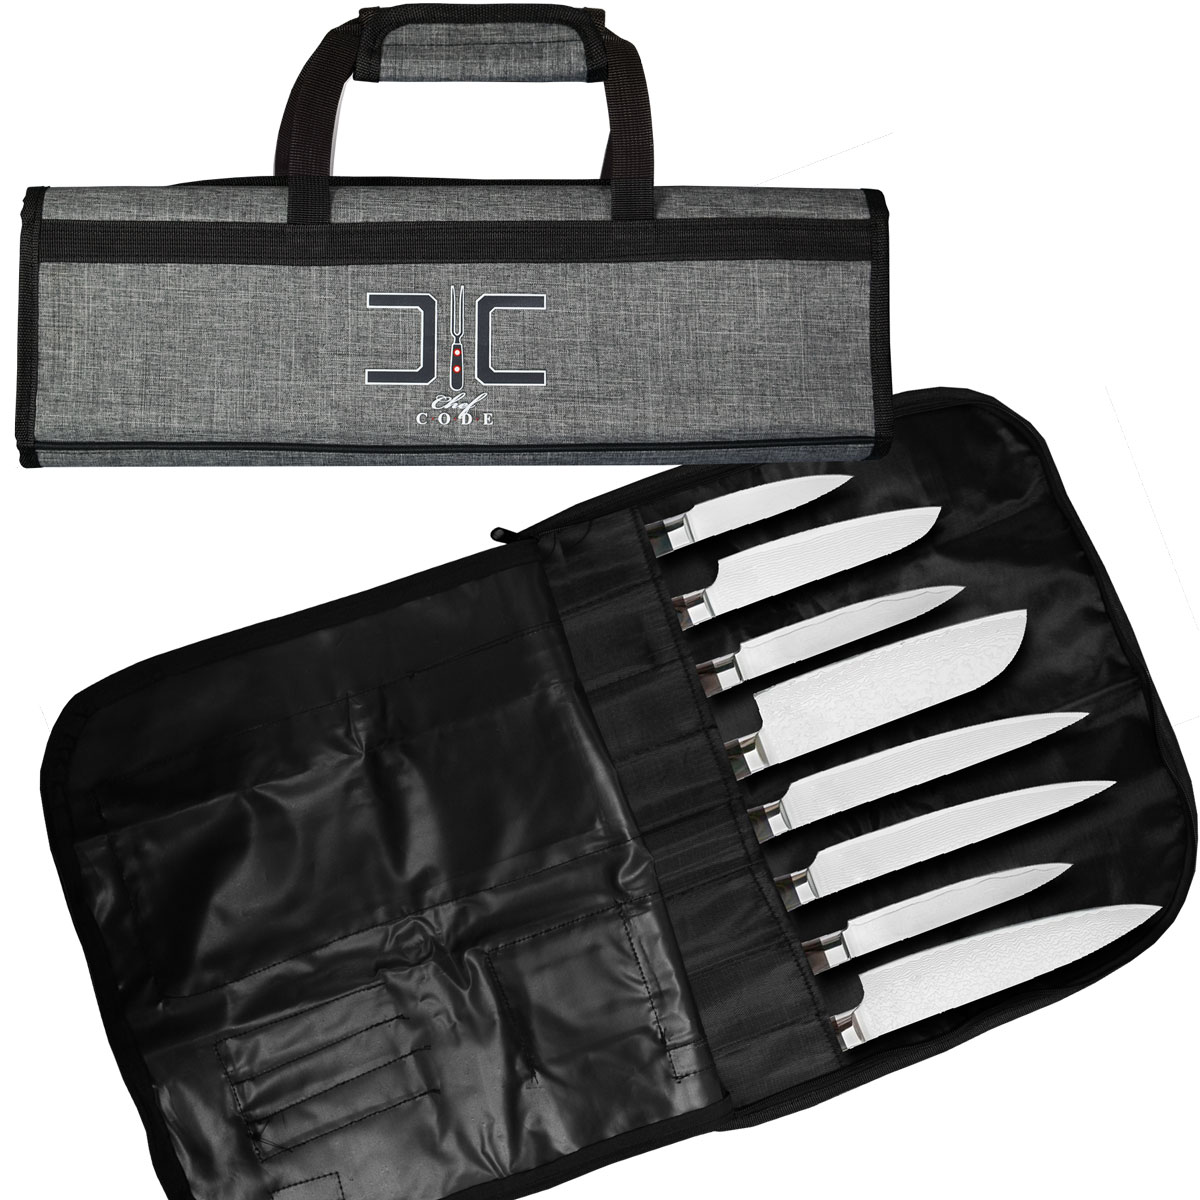 CHEF CODE Chef Knife Bag, Roll Bag for Kitchen Knife Storage